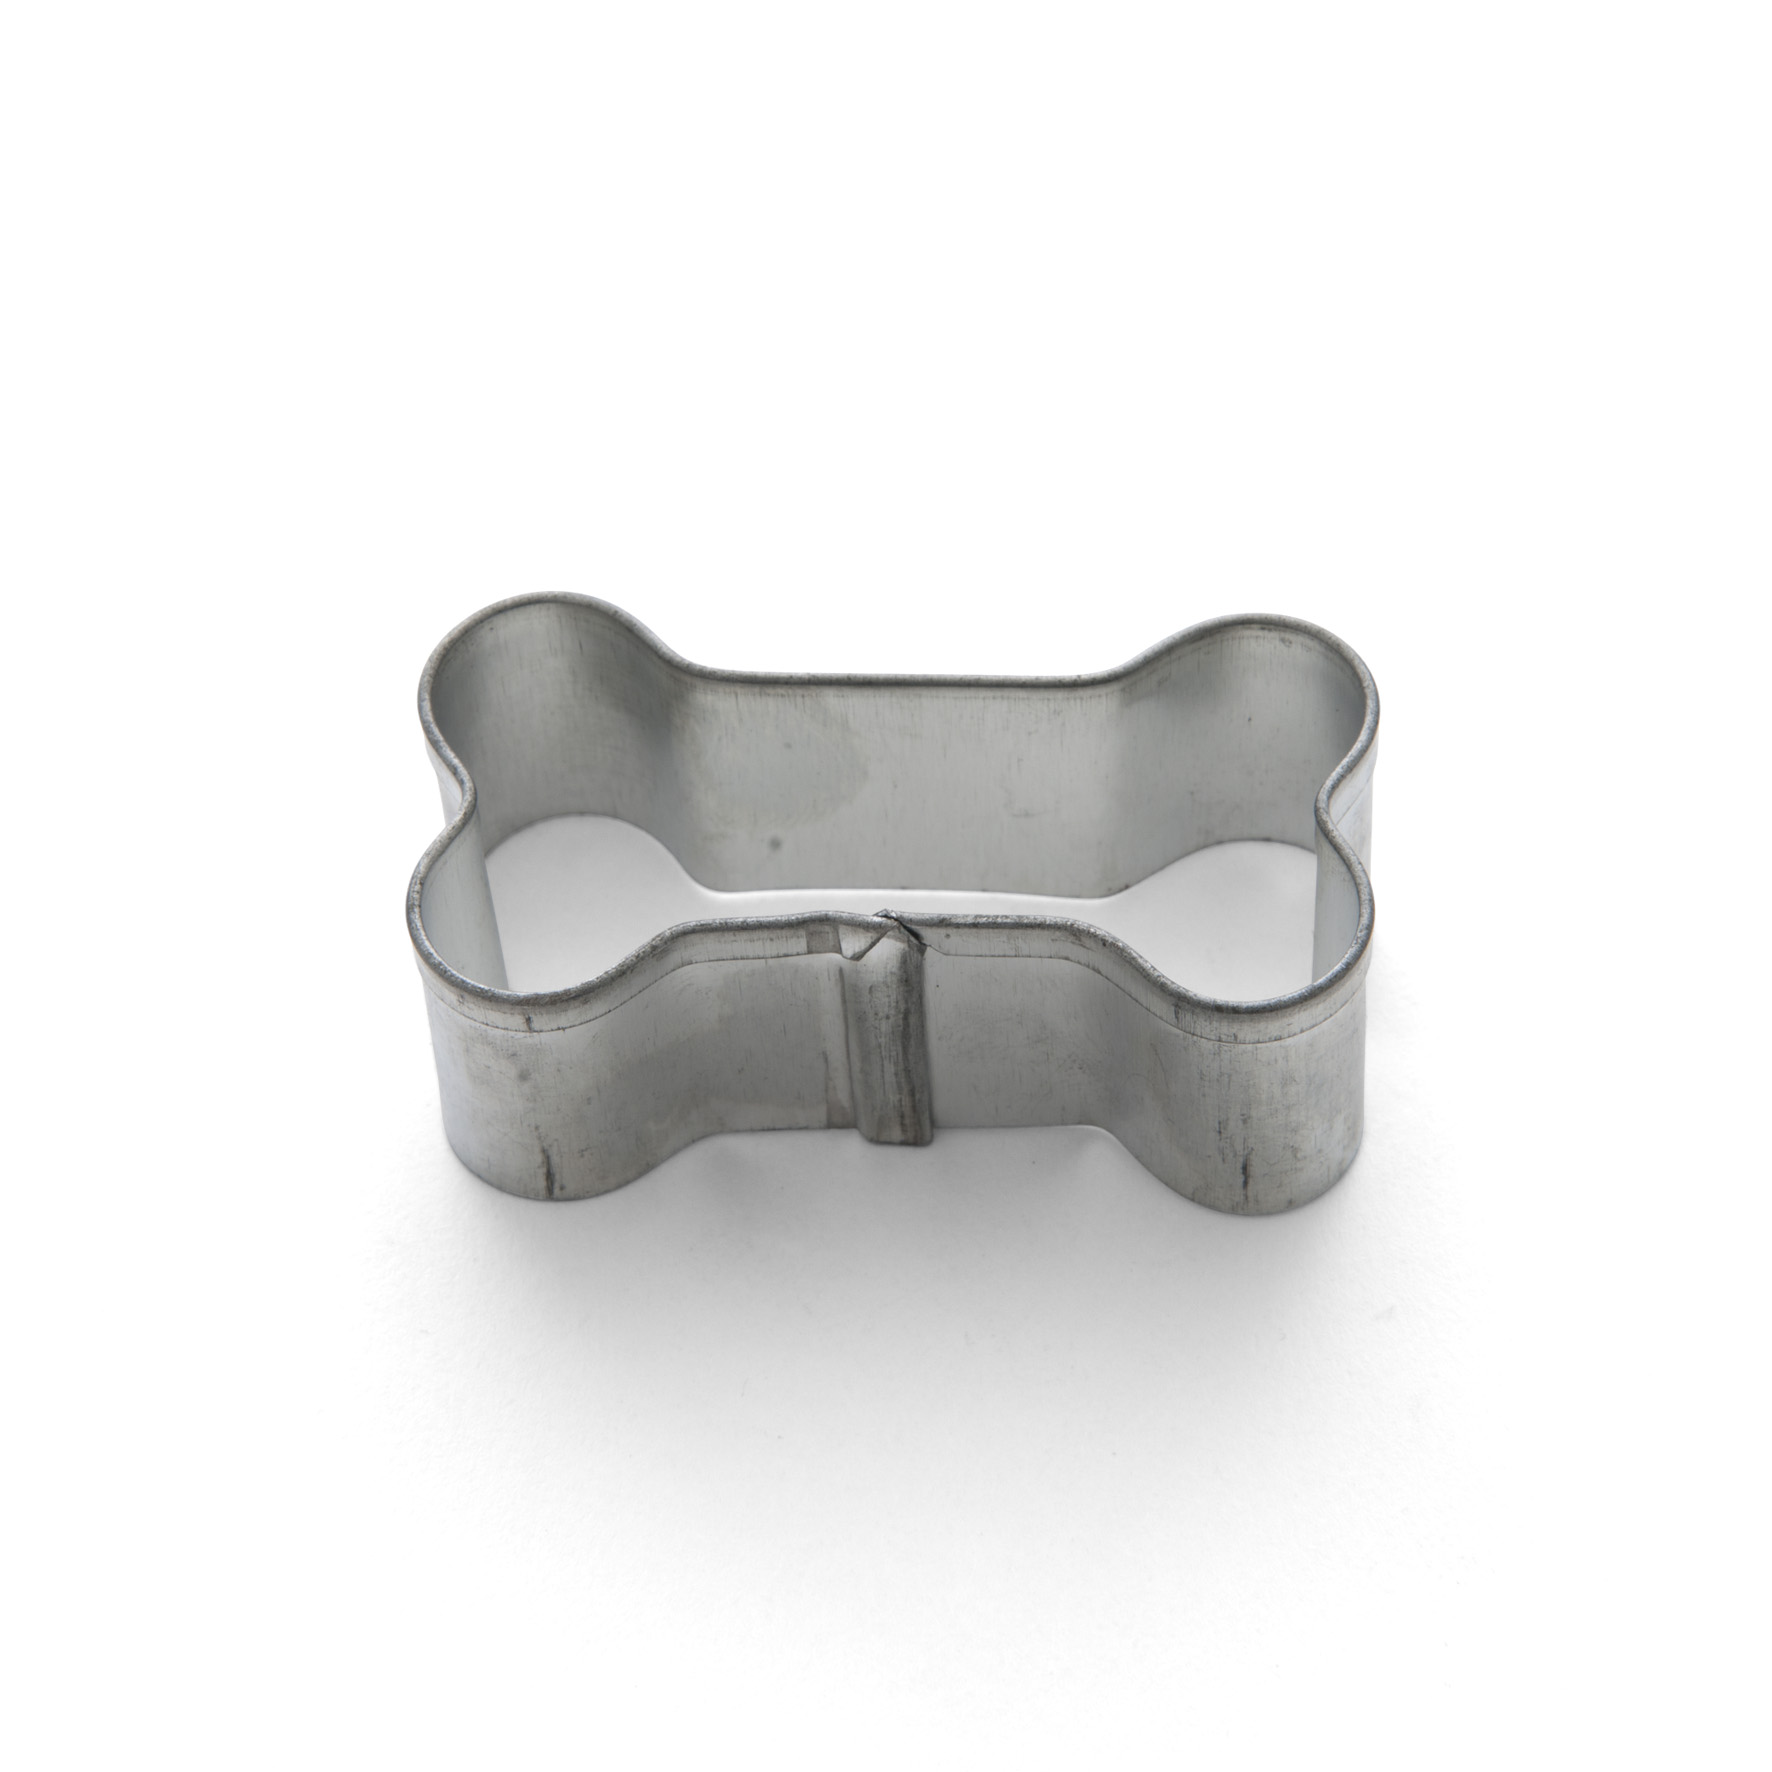 Small dog bone cookie cutter